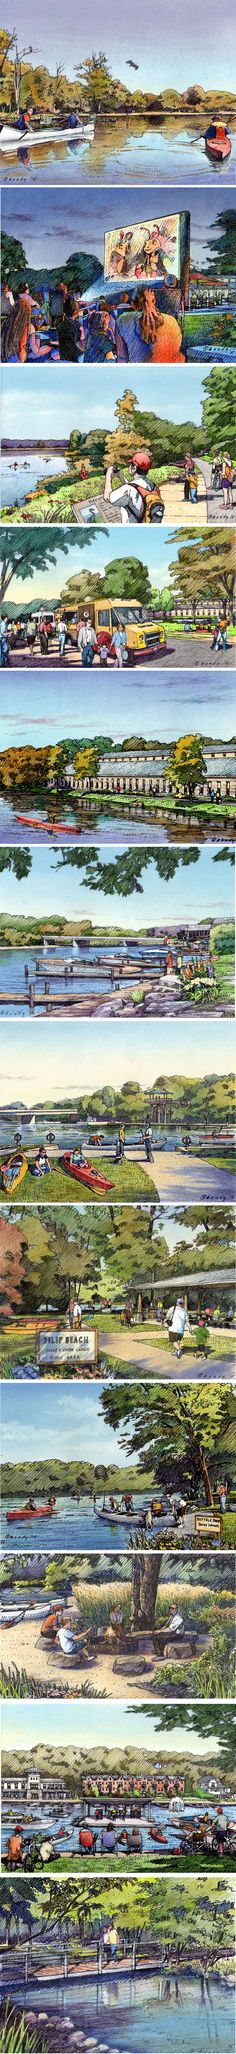 Fox River recreational corridor.  12 Charrette drawings in 5 days for CMAP.  Small format sketches in color by Bondy Studio.